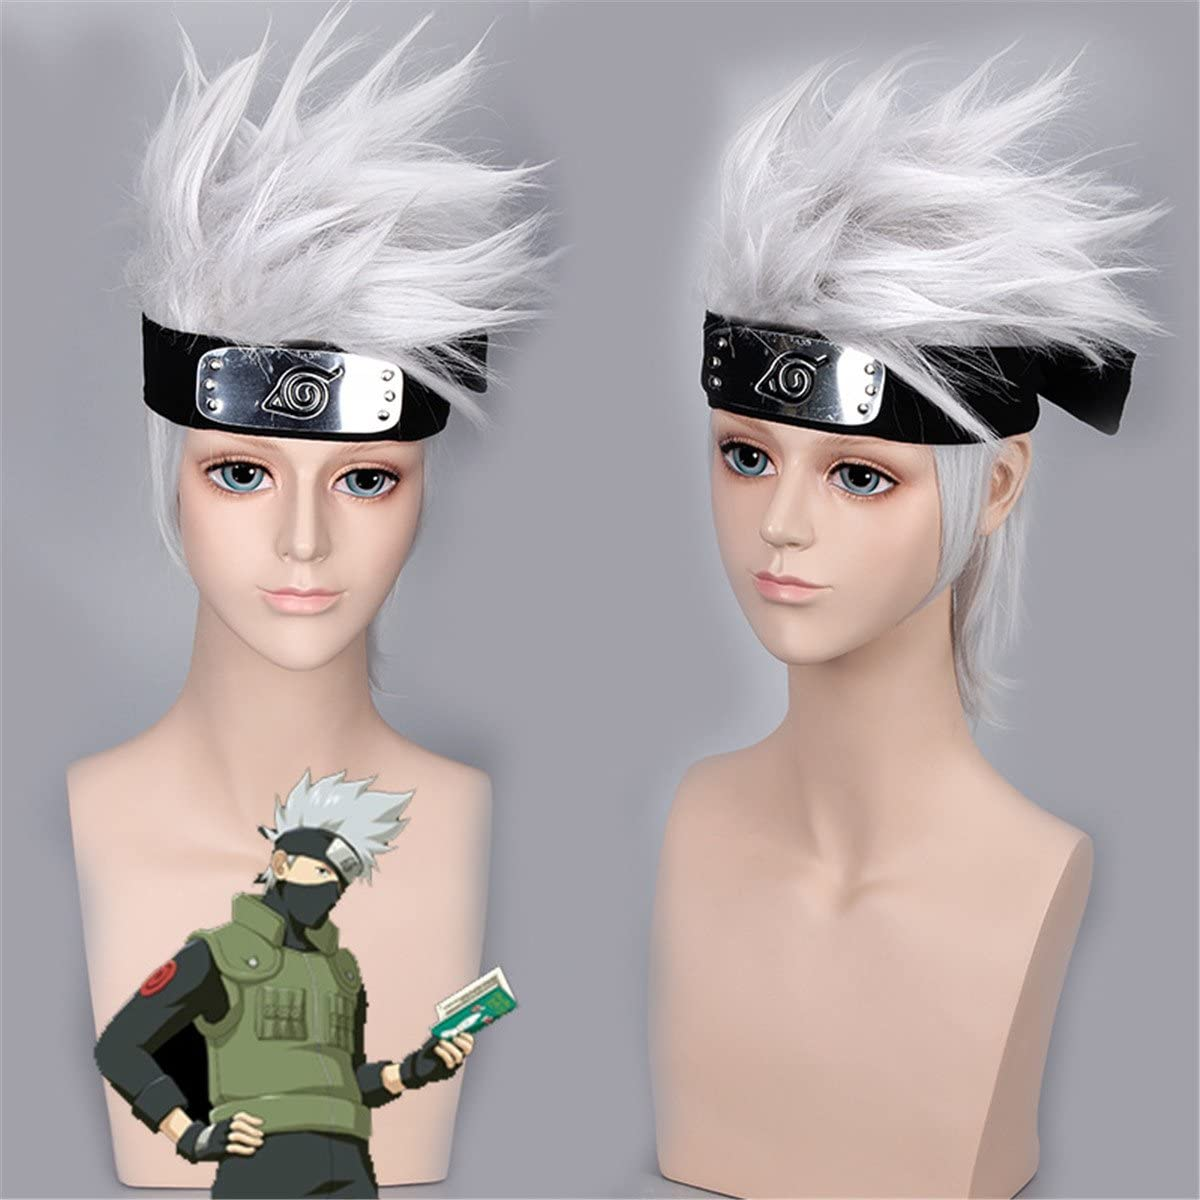 CYJGAF Short Silver White Anime Cosplay Wigs with Headband Short Party Hair Synthetic Wig